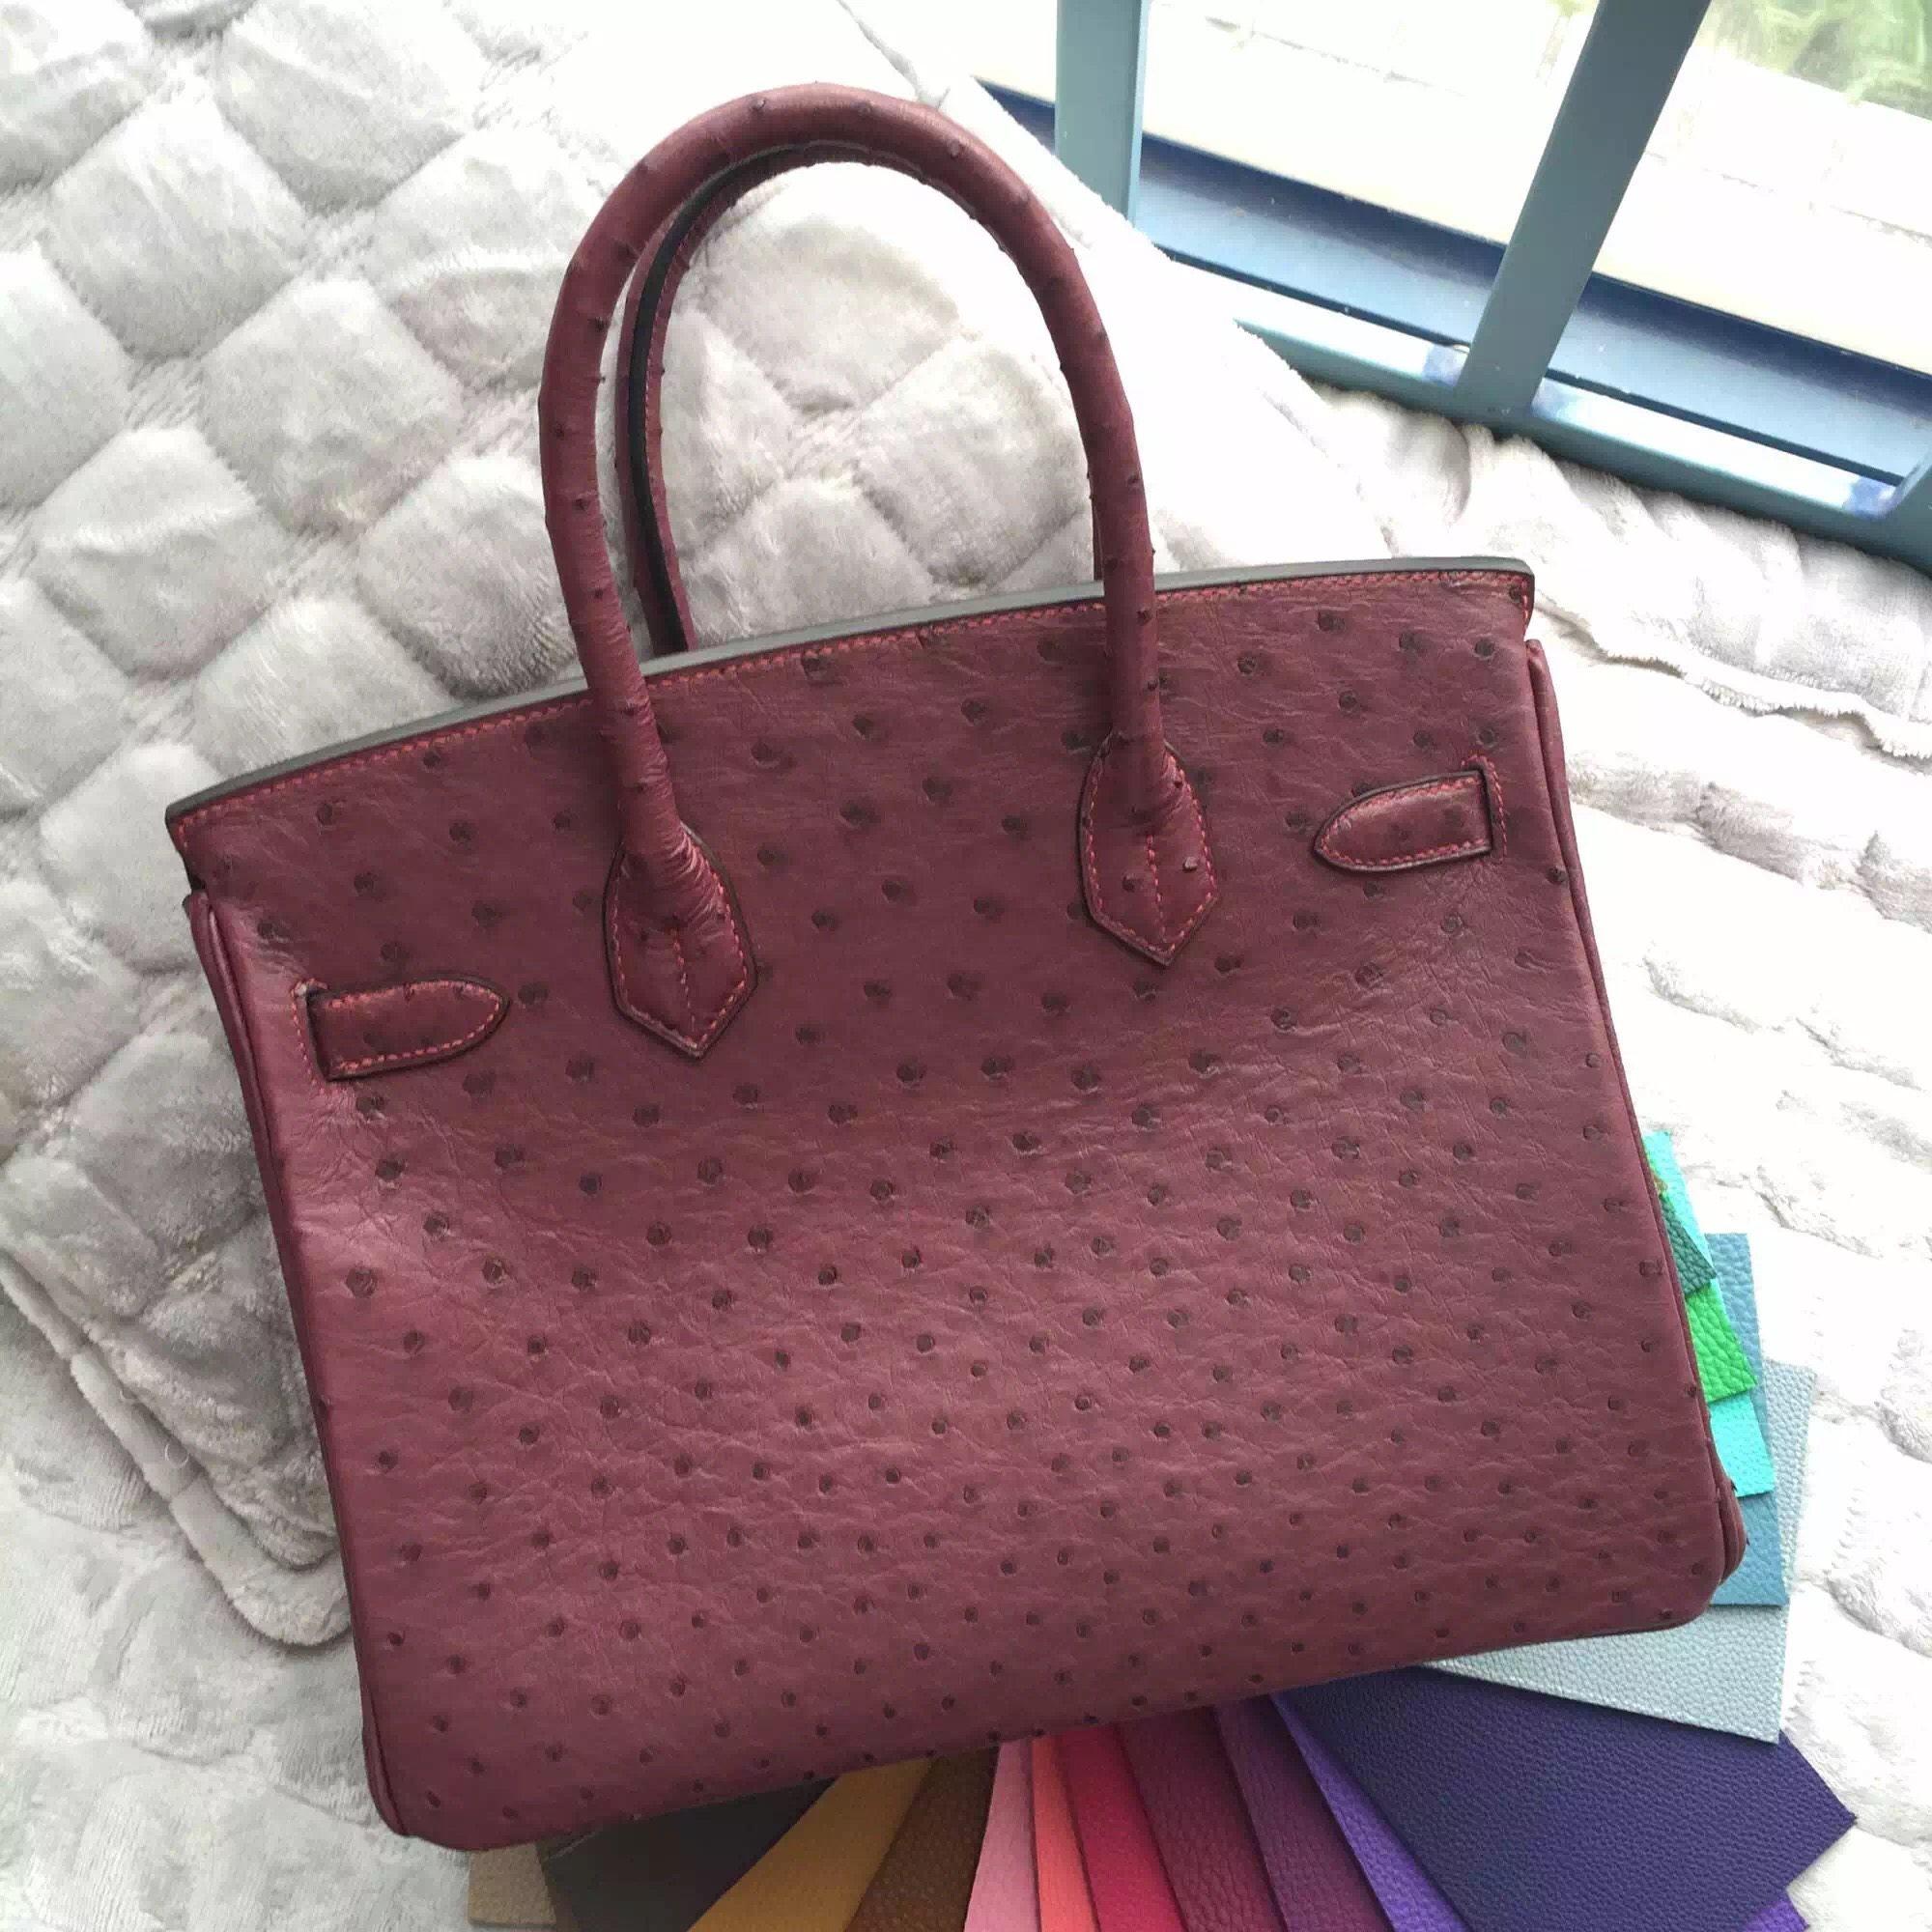 Wholesale B5 Ruby Red Ostrich Leather Hermes Birkin Bag 30CM Ladies's Tote Bag